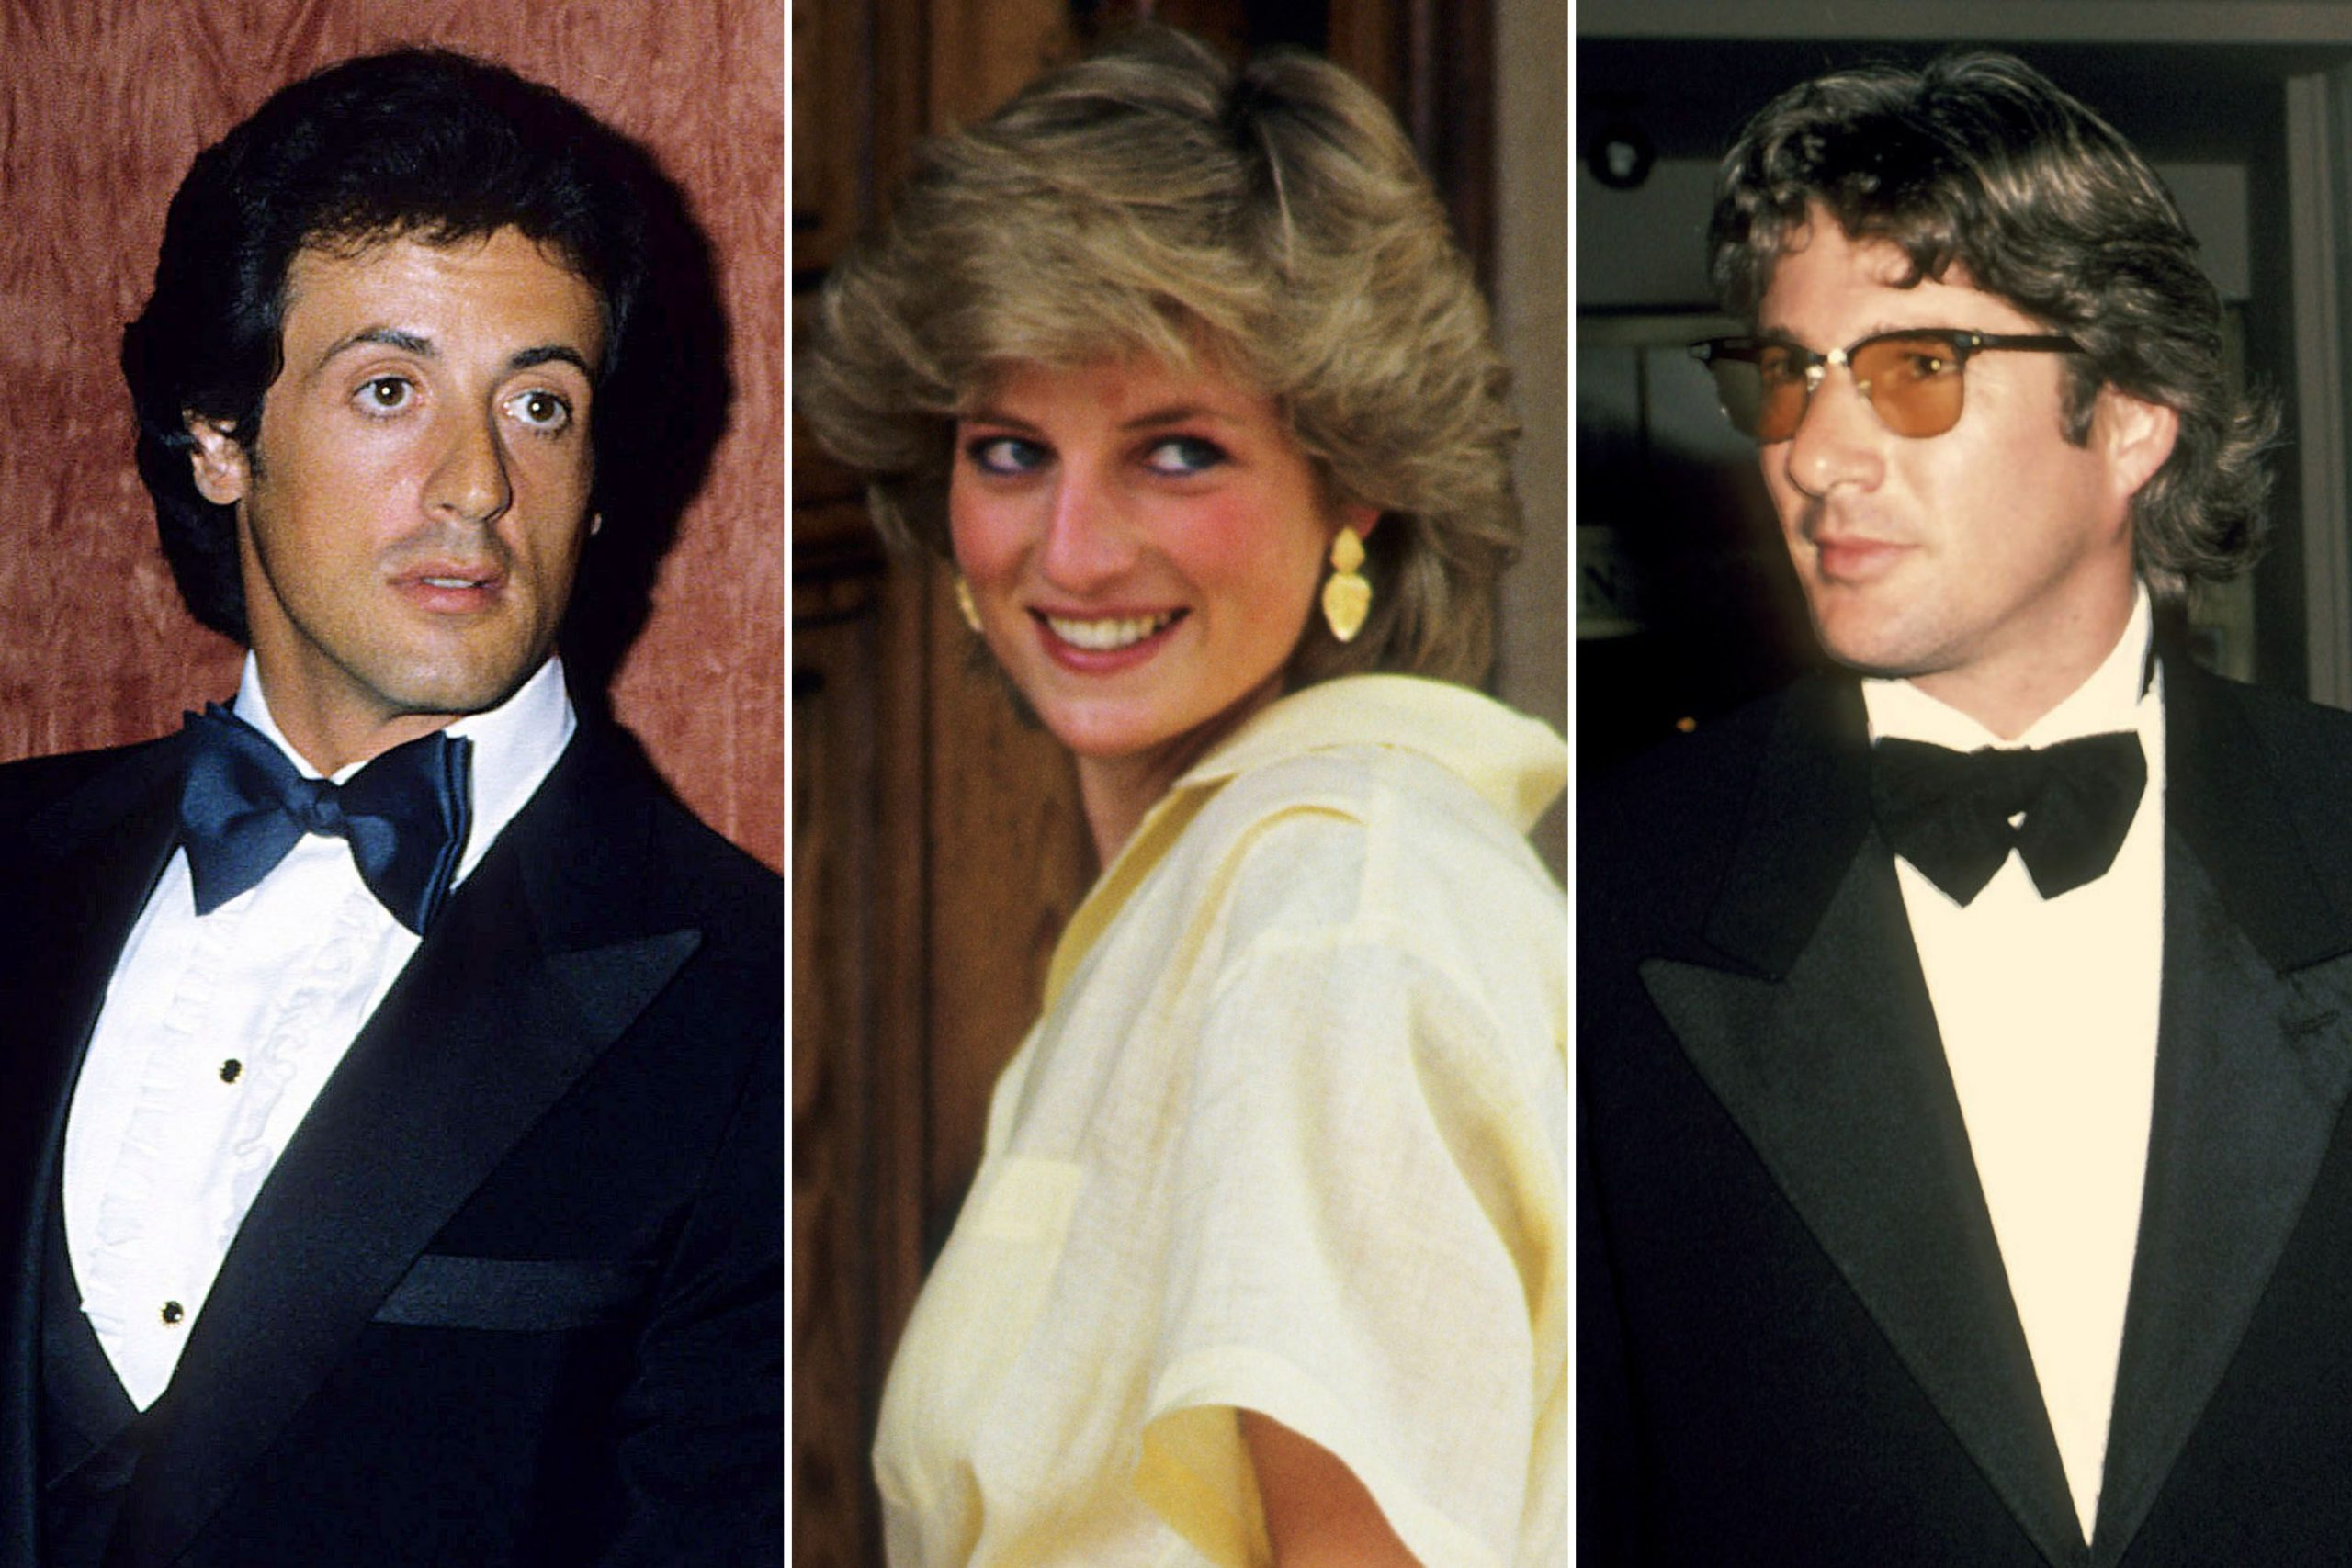 sylvester-stallone-and-richard-gere-reportedly-got-into-a-fight-over-princess-diana